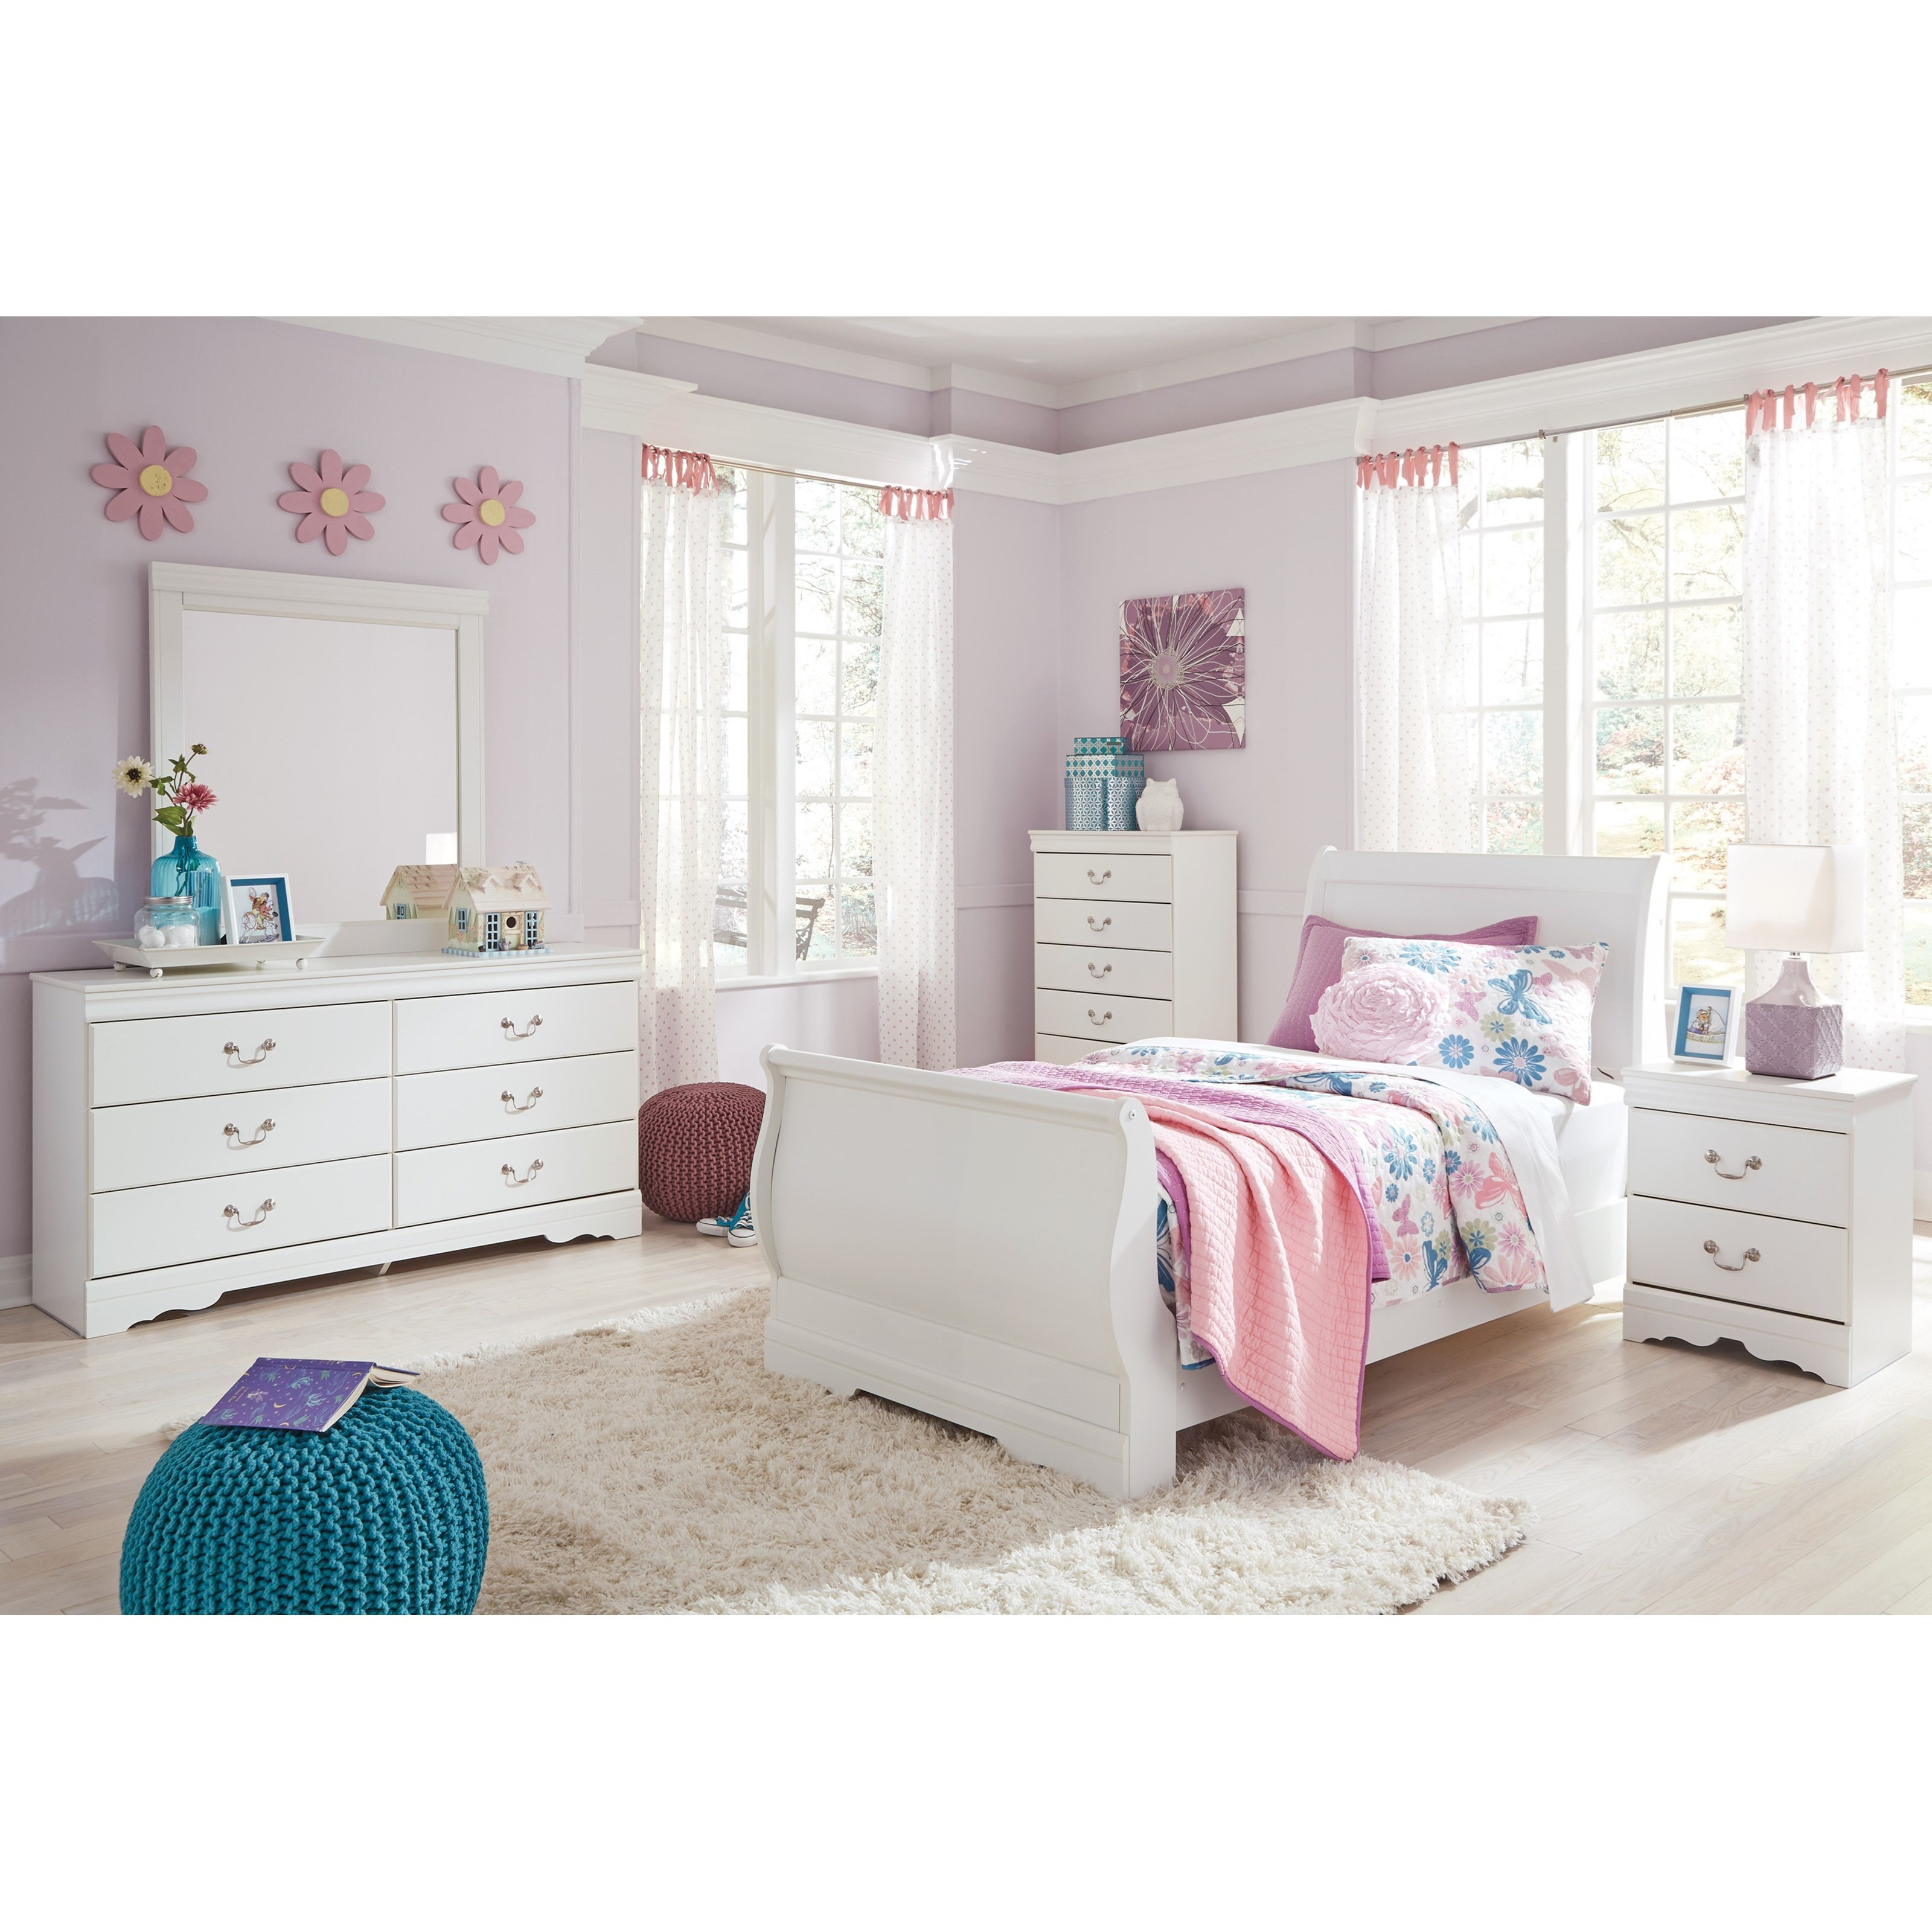 Ashley Furniture Fayetteville: Signature Design By Ashley Anarasia 4 Piece Twin Bedroom